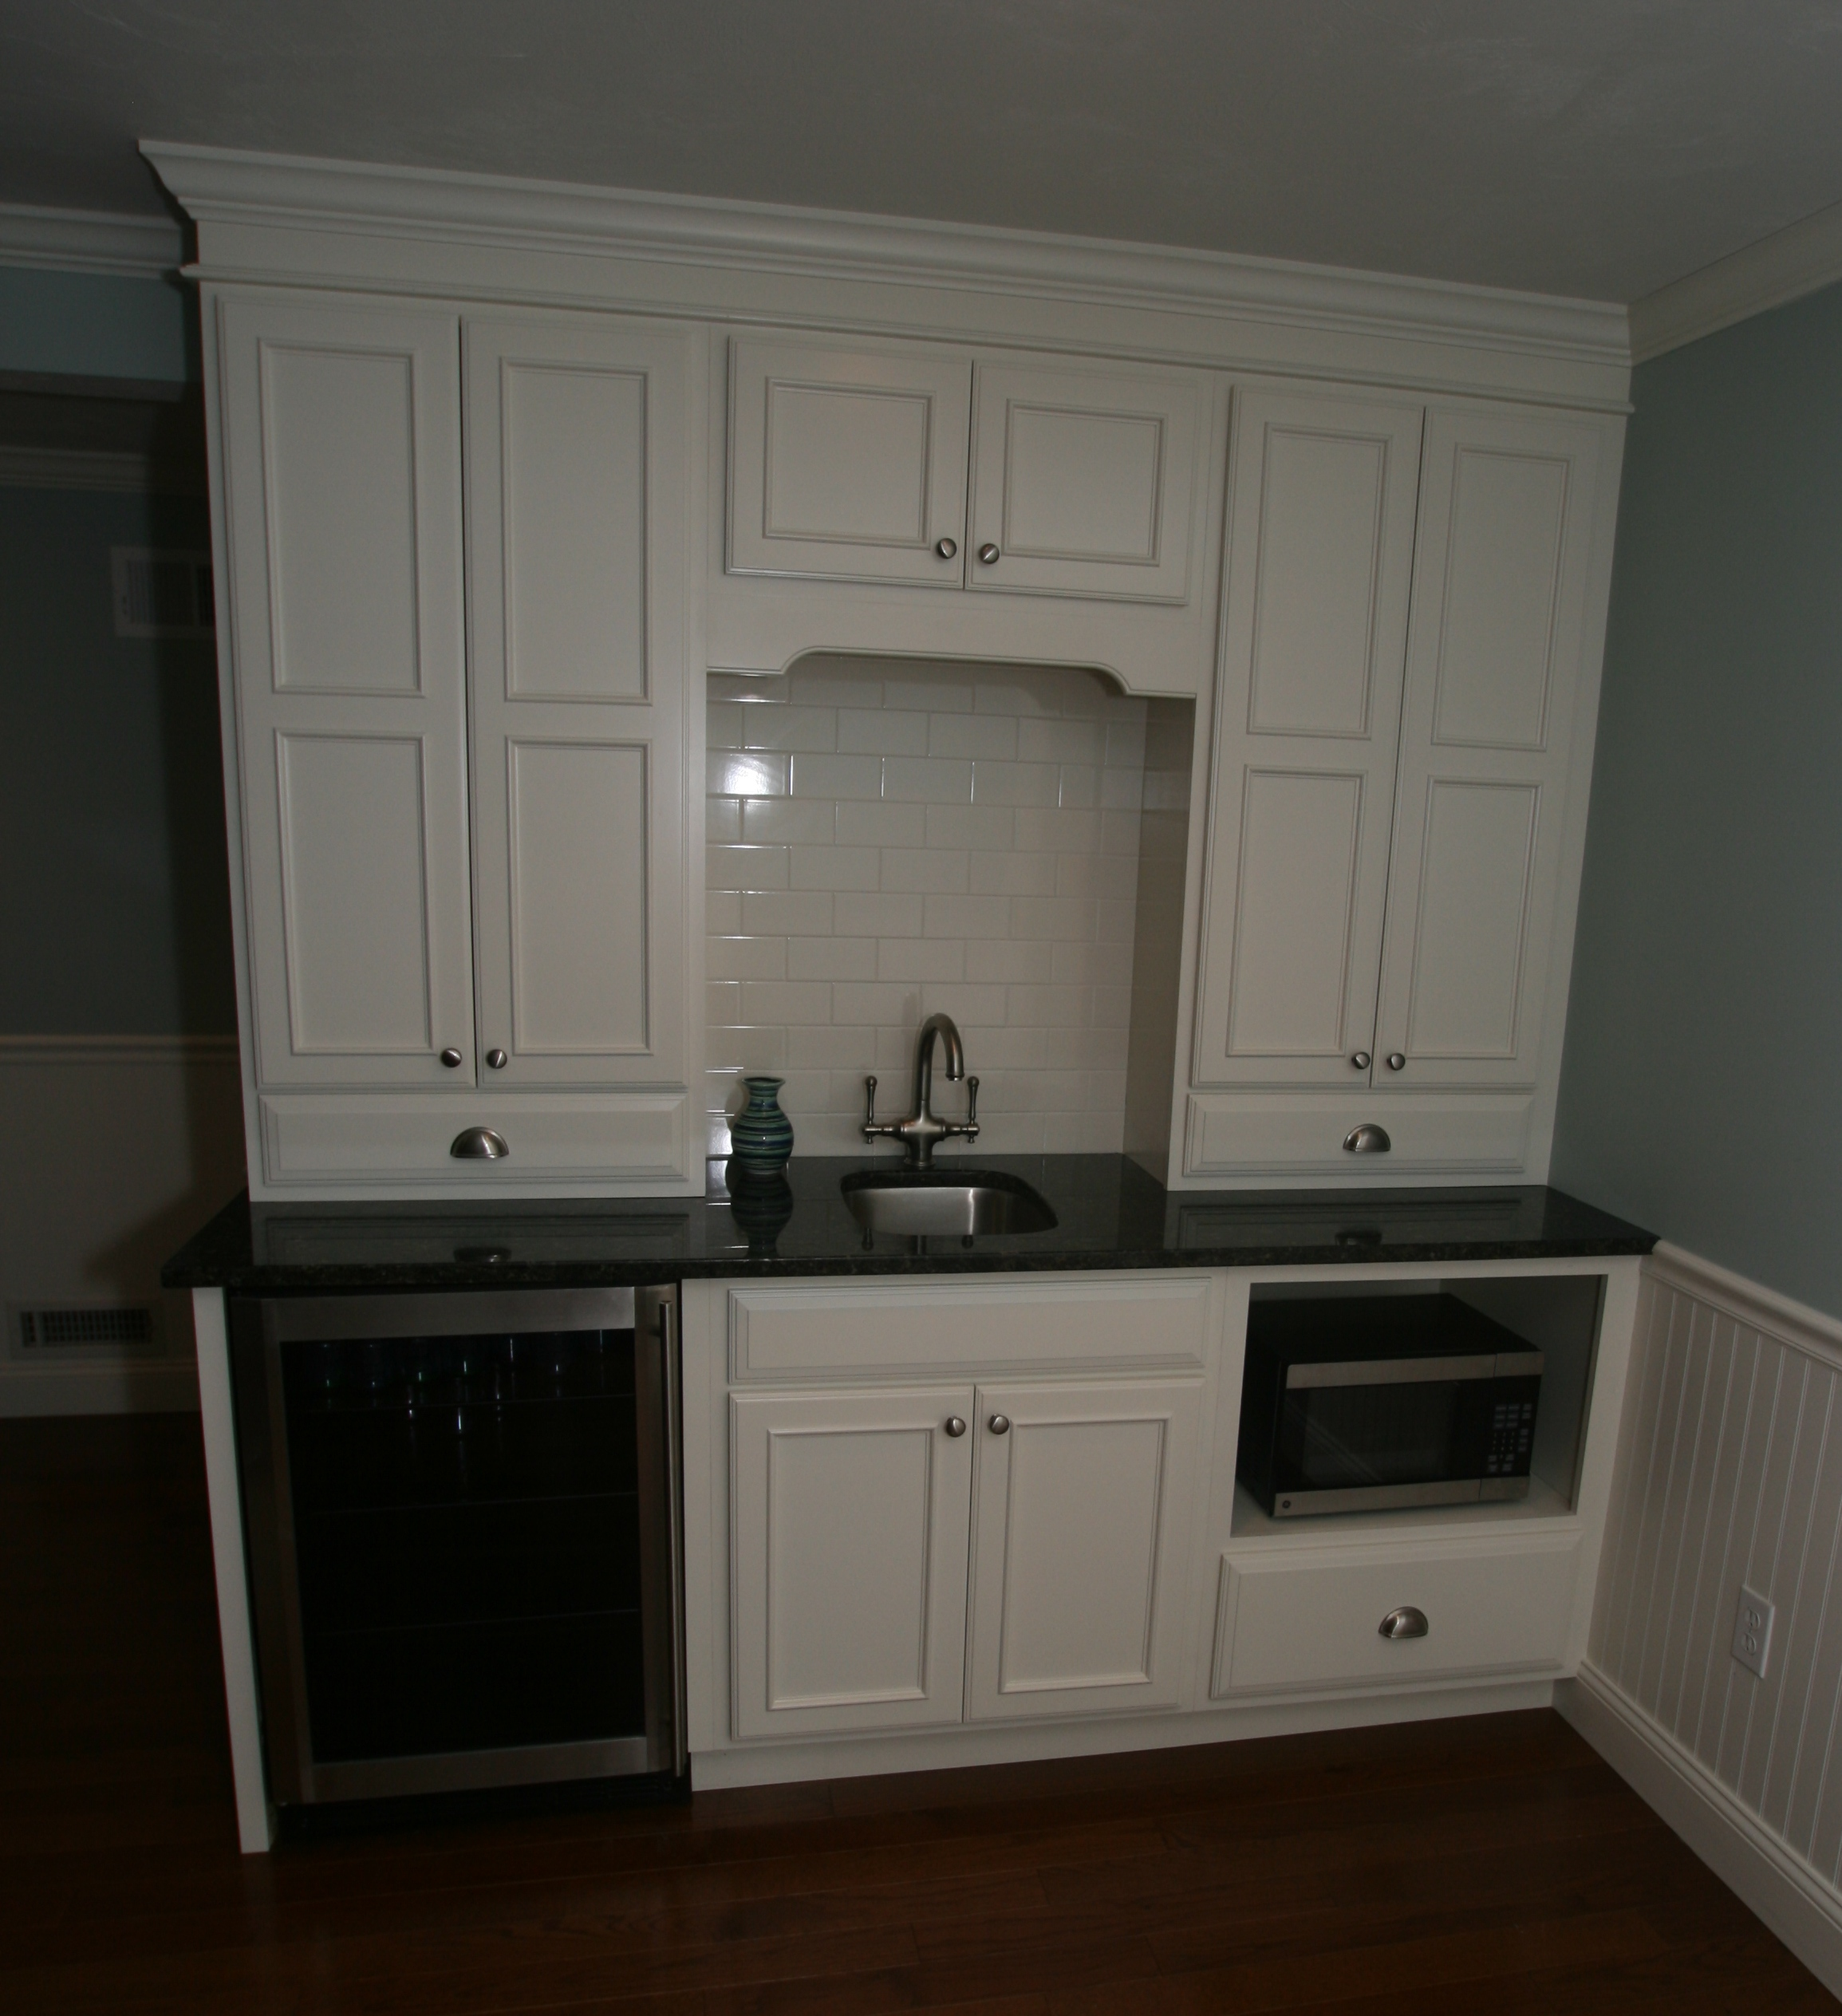 Covington White Kitchenette renaud dahls